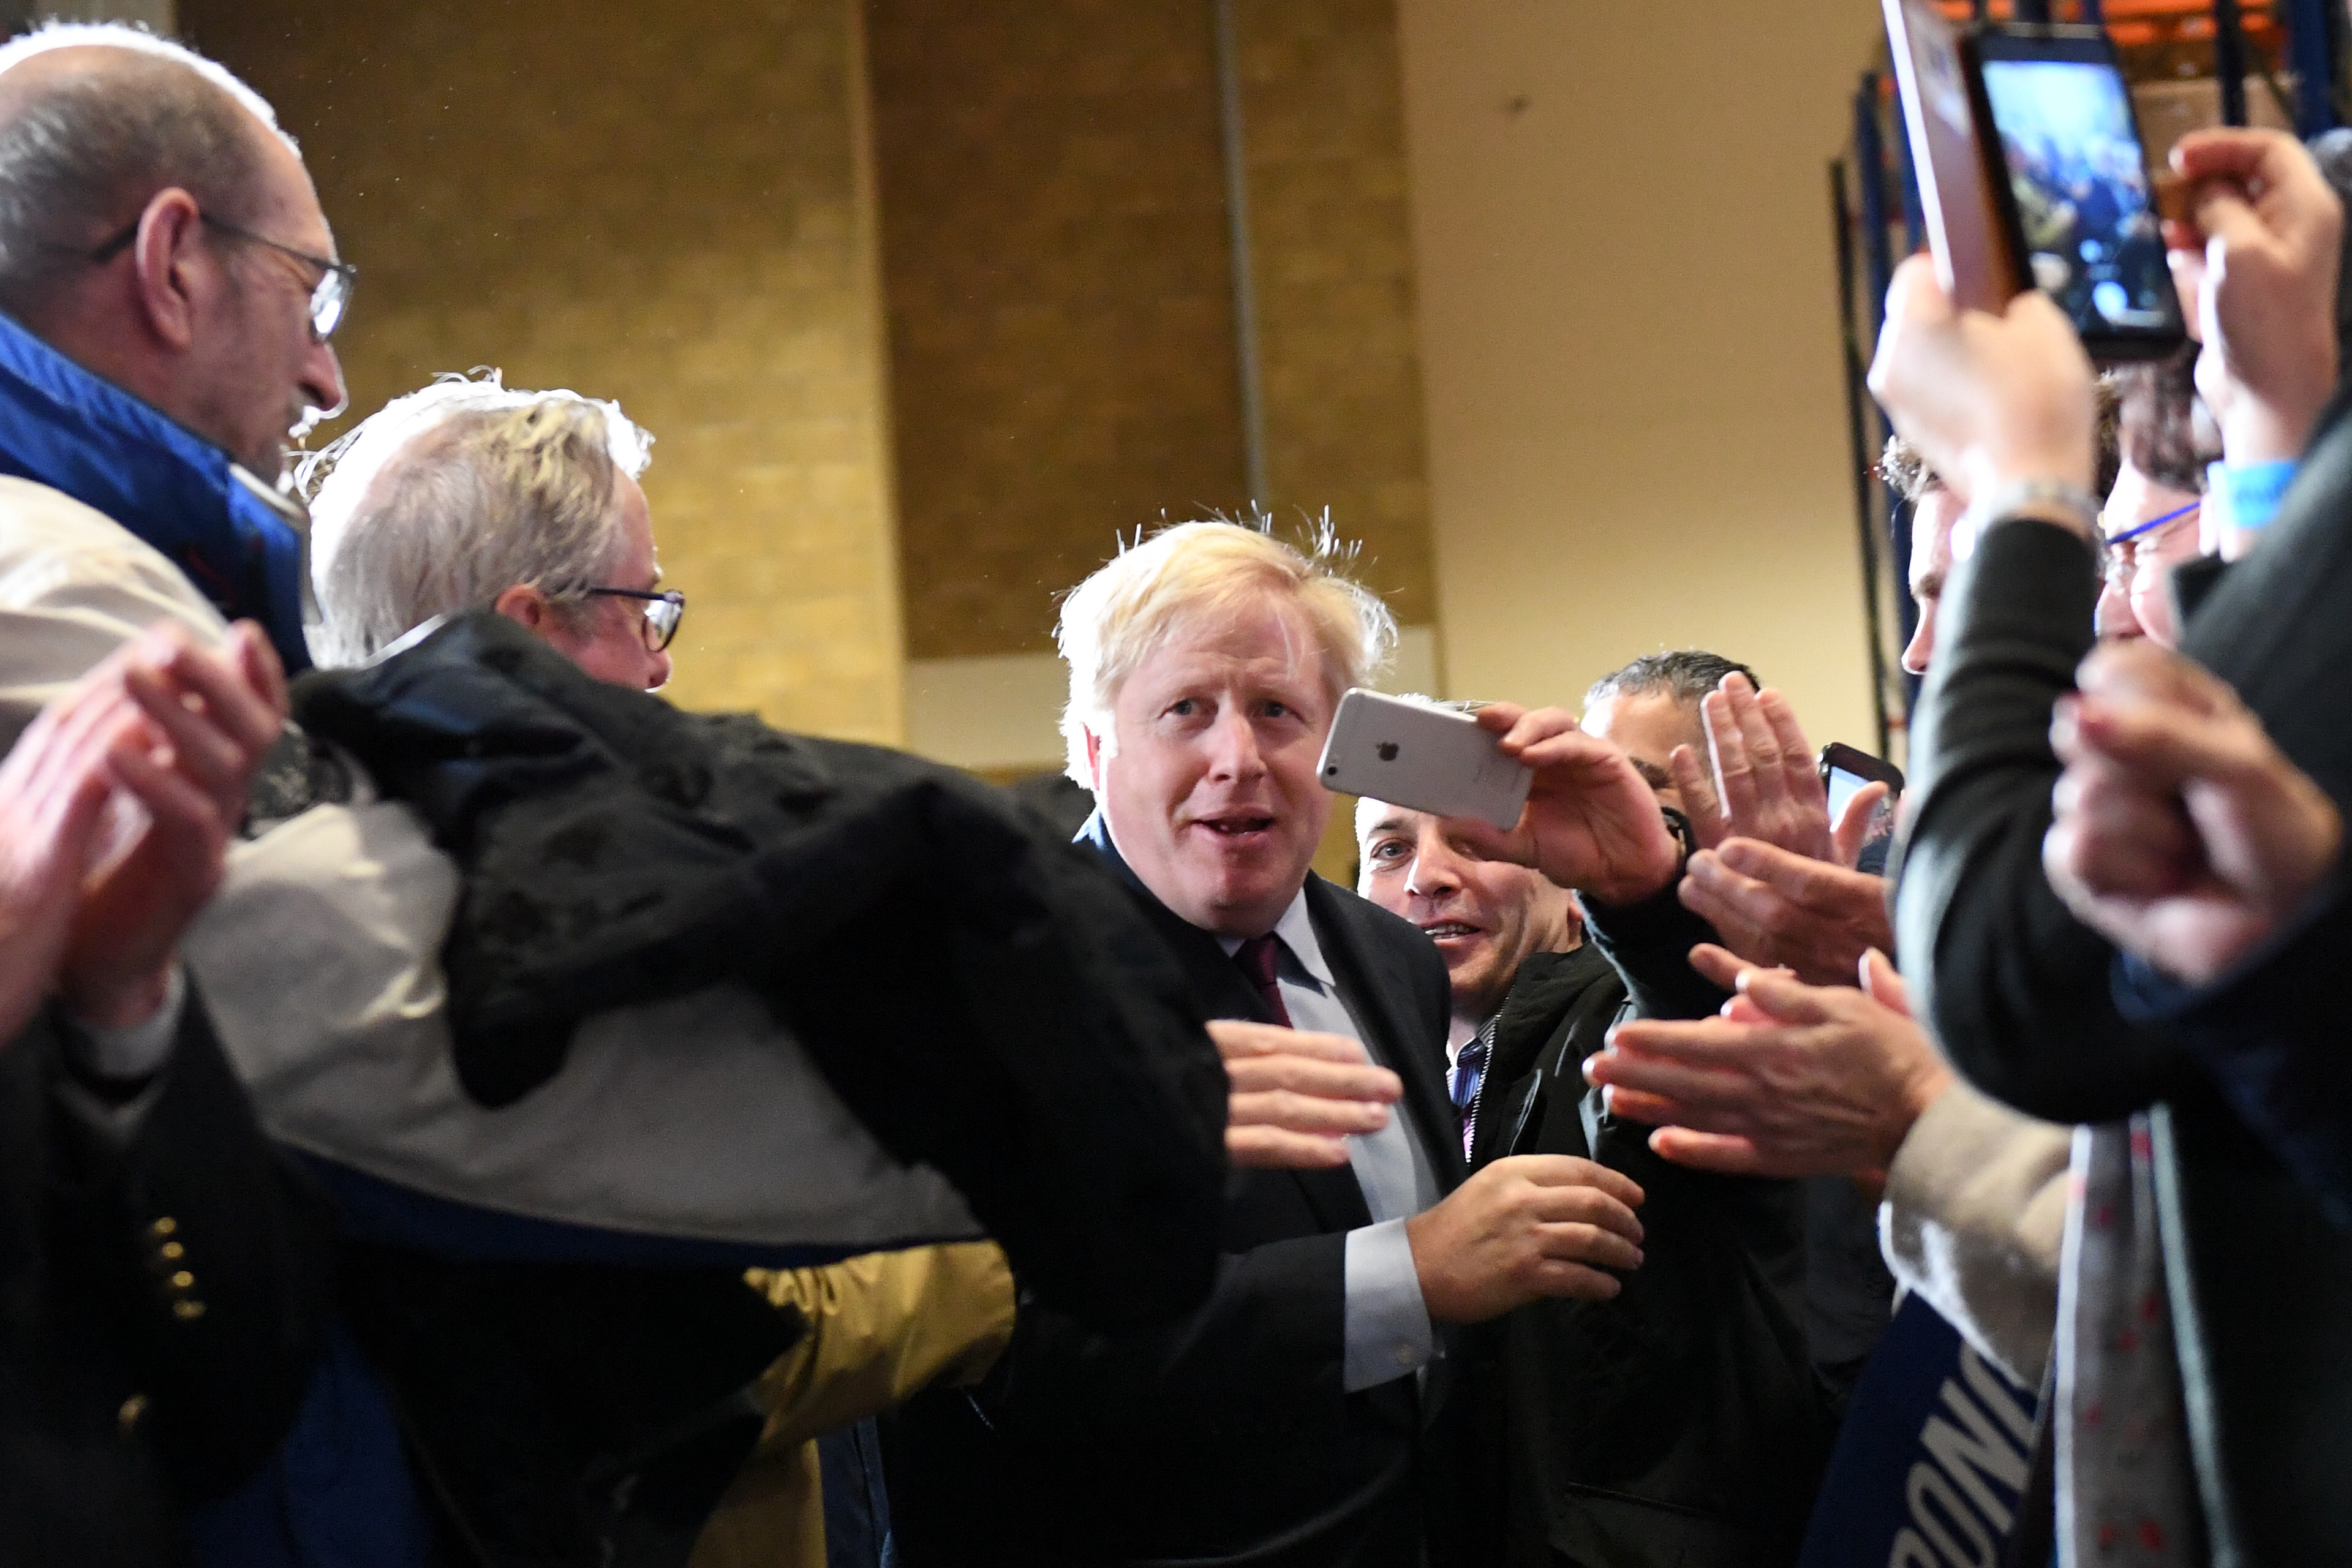 Prime Minister Boris Johnson during a visit to Gardiner Bros in Hardwicke, while on the General Election campaign trail.